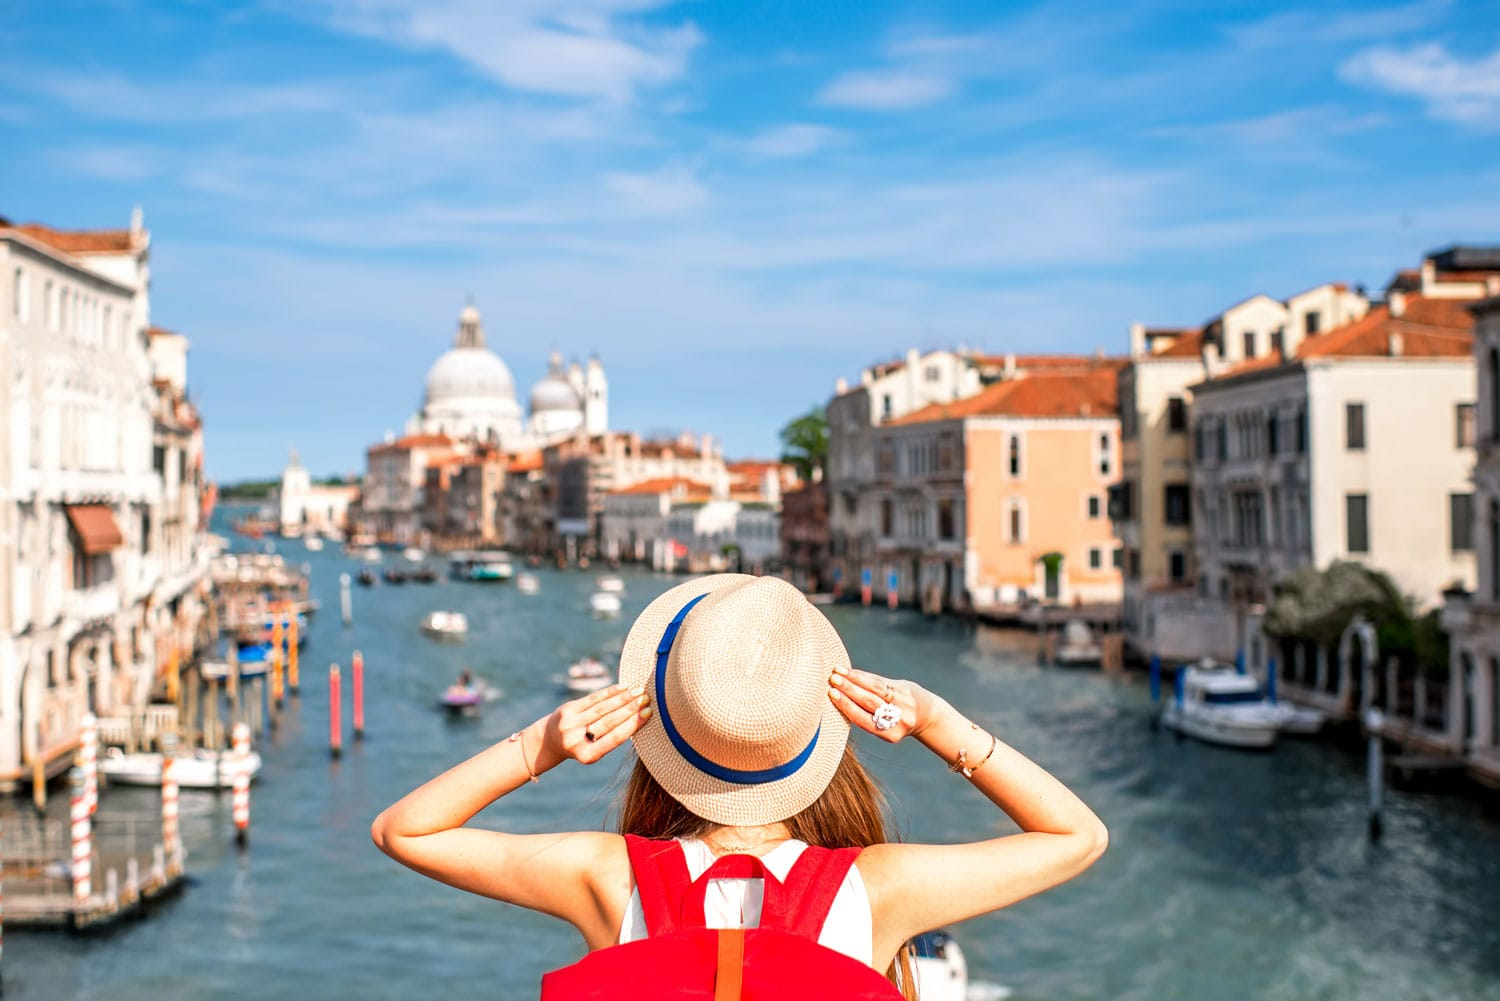 woman-traveler-europe-shutterstock_430077532